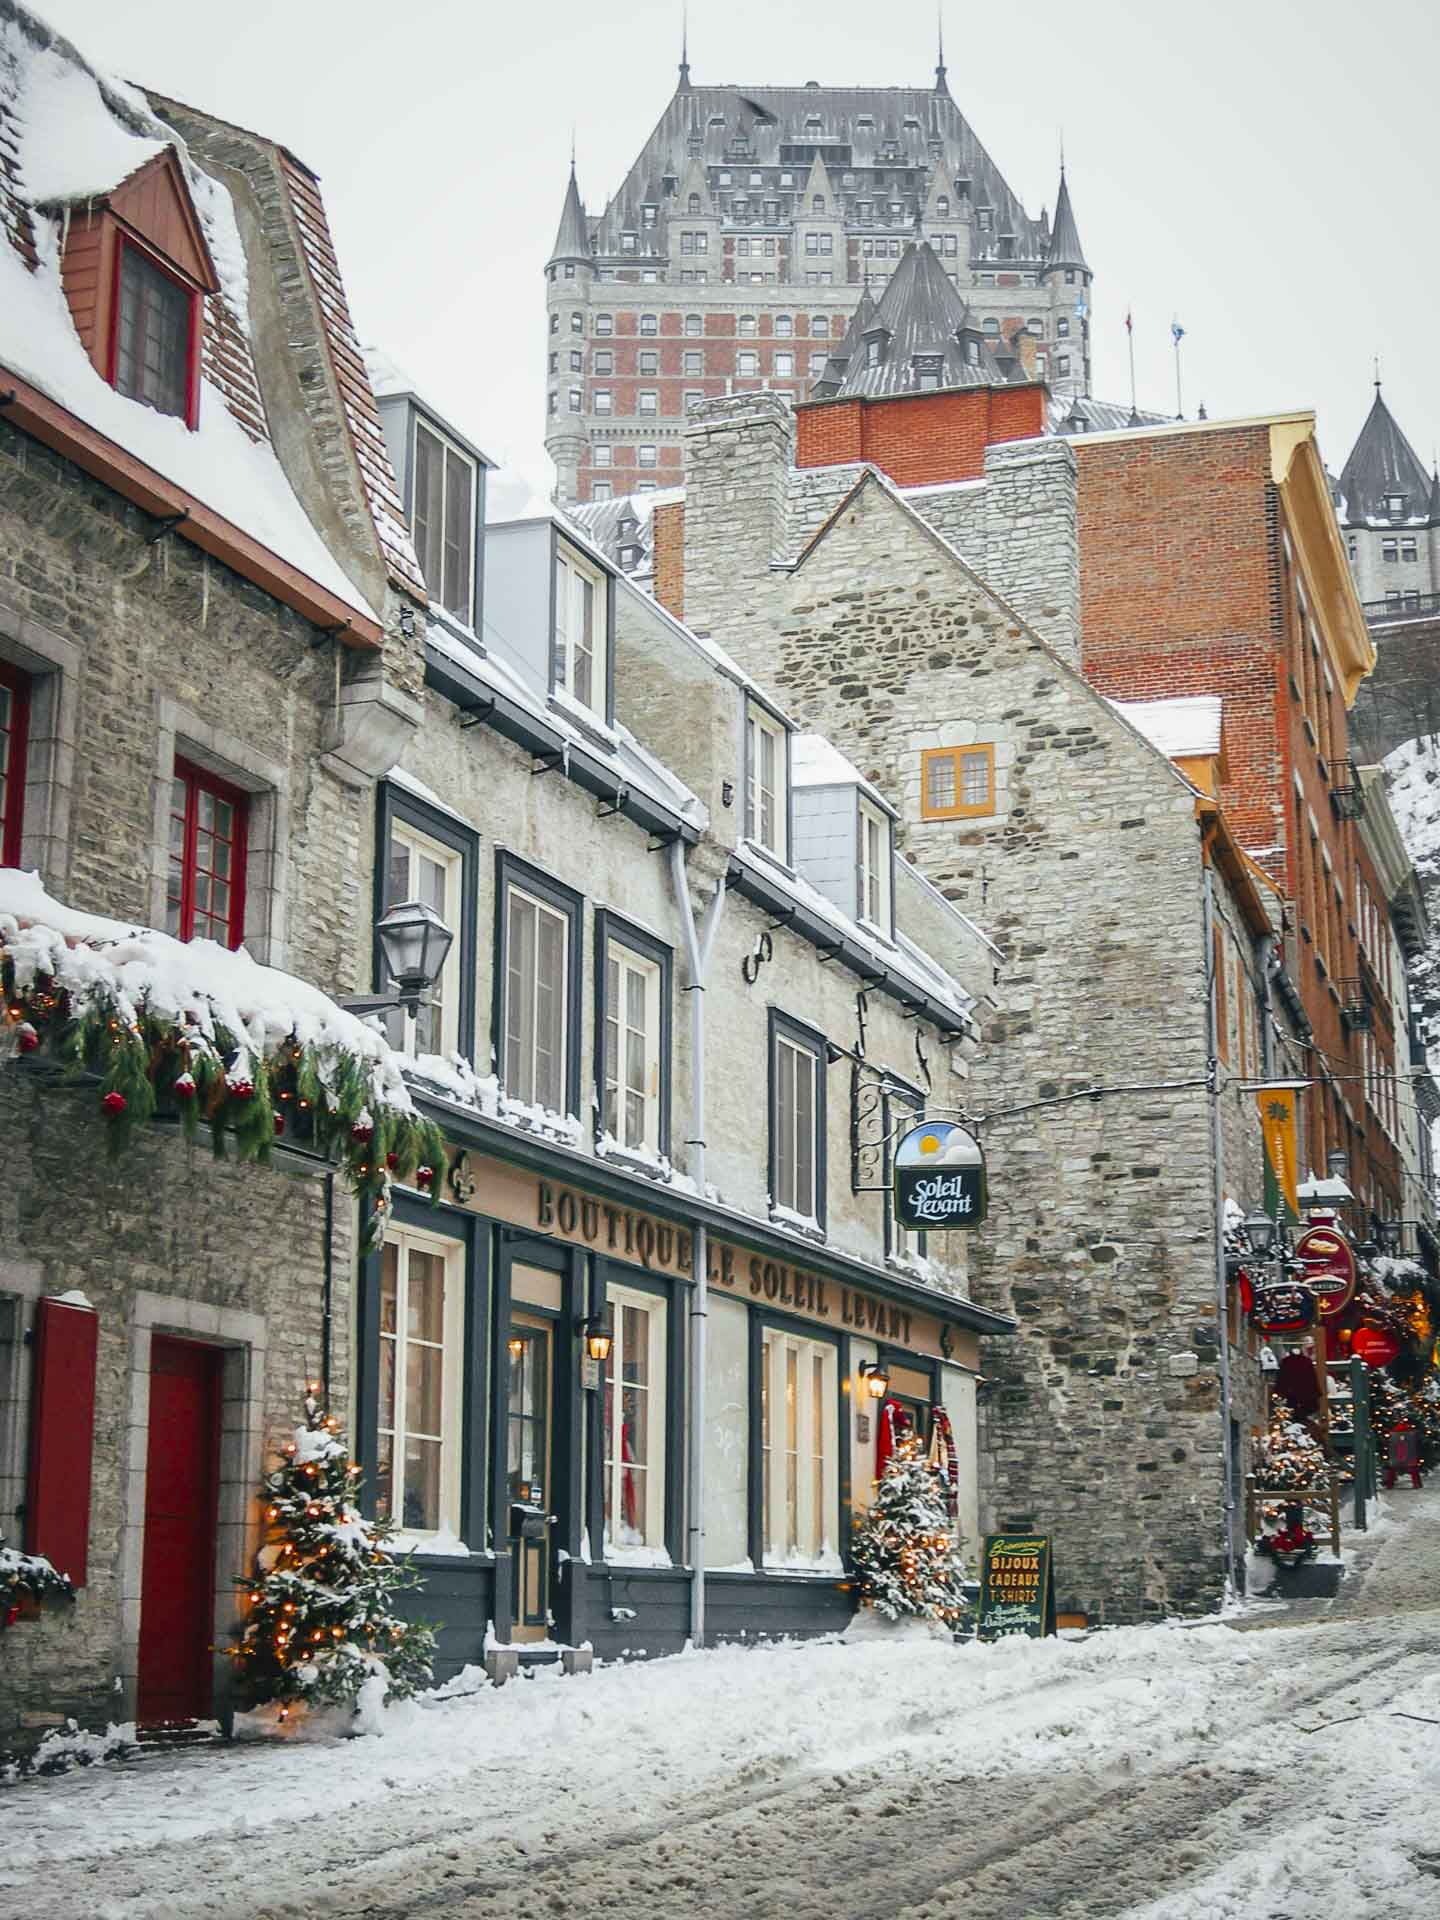 old quebec city in winter with chateau frontenac in background